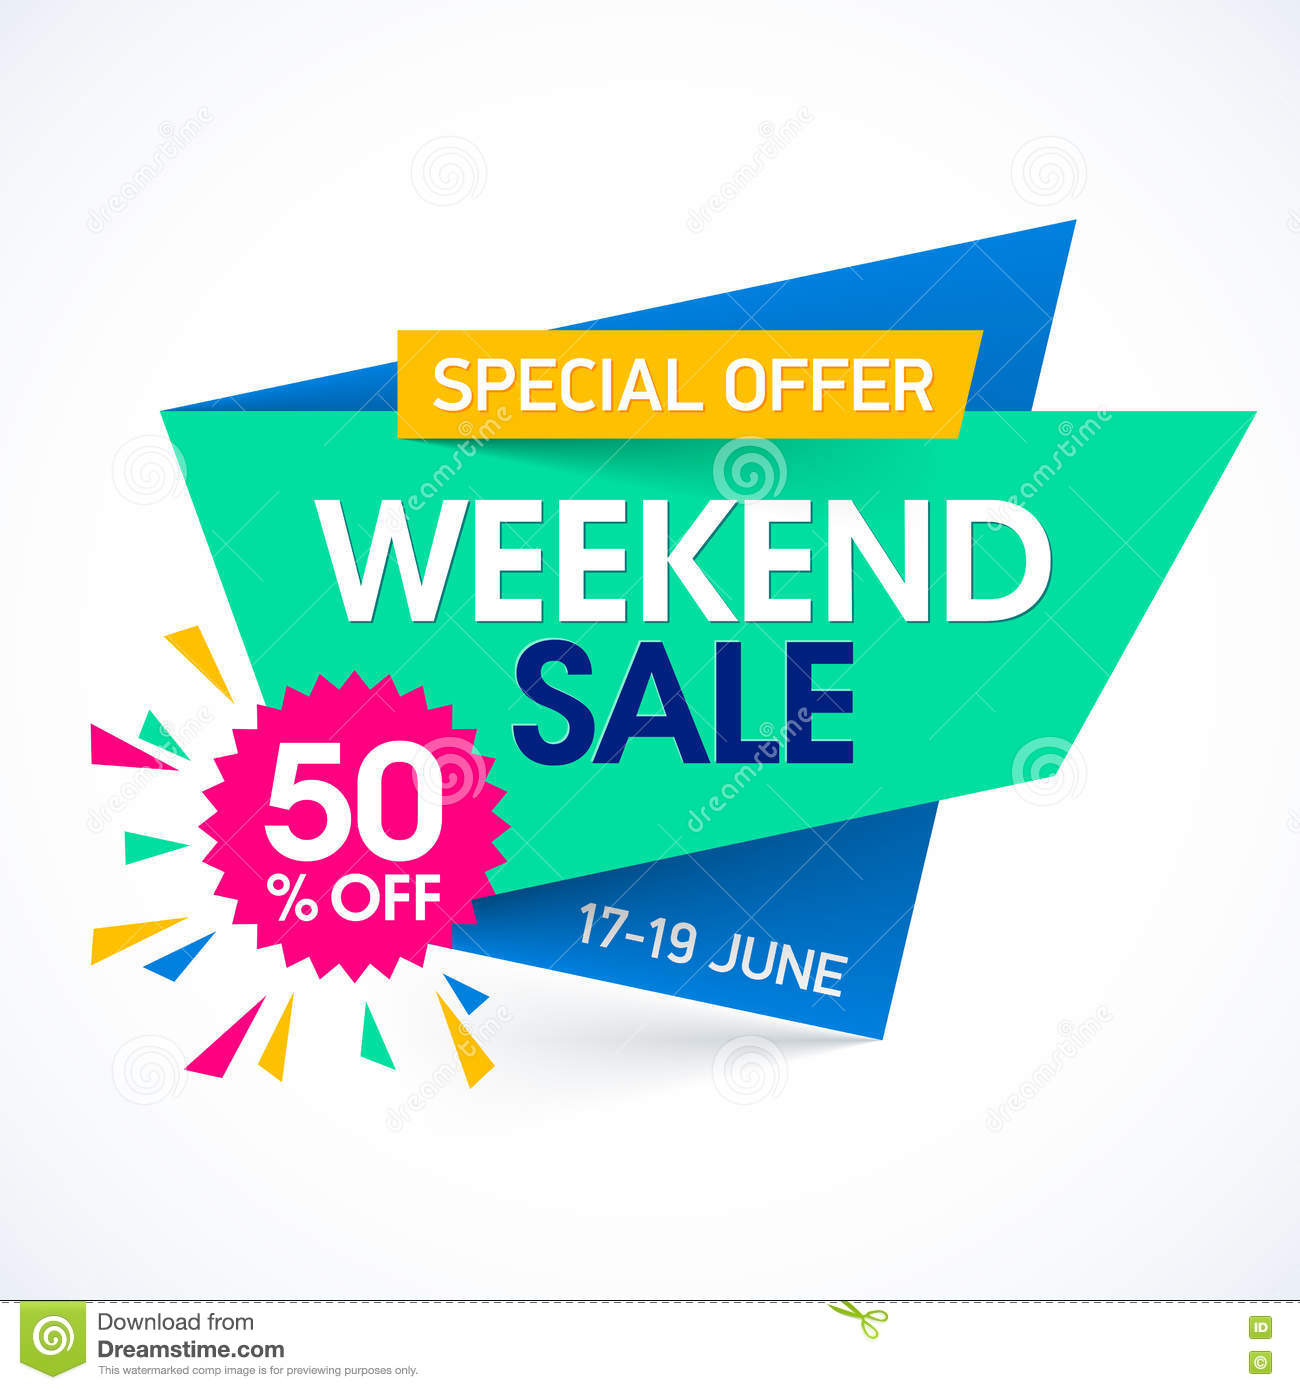 Weekend Sale Banner: Weekend Super Sale Special Offer Banner Stock Vector